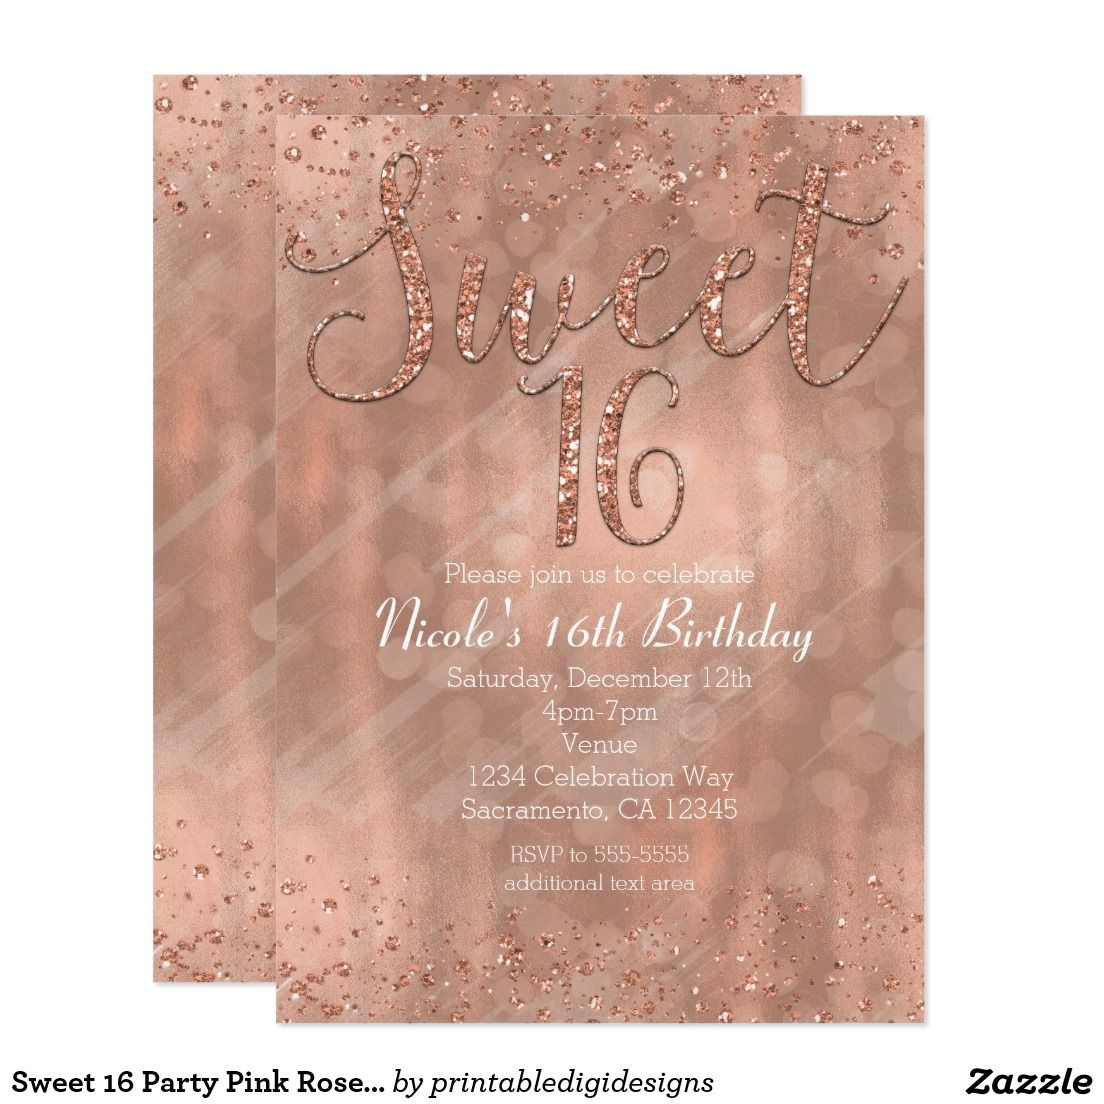 Sweet 16 party pink rose gold glamour invitations sweet 16 sweet 16 party pink rose gold glamour invitations solutioingenieria Image collections